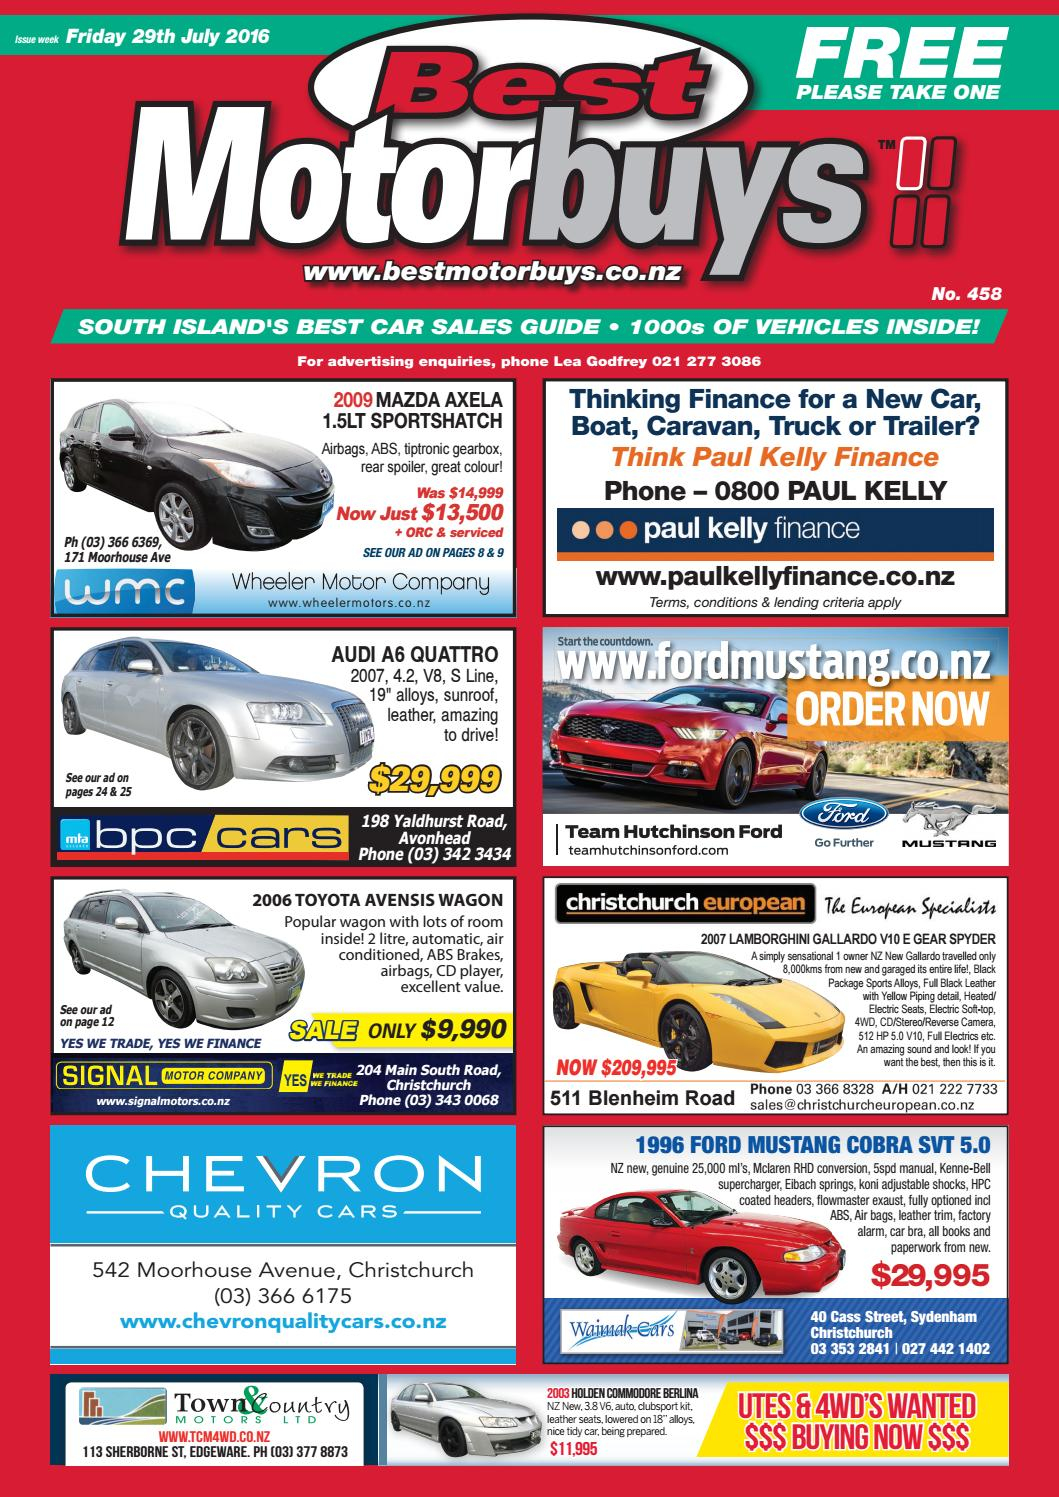 Best Motorbuys 29-07-16 by Local Newspapers - issuu